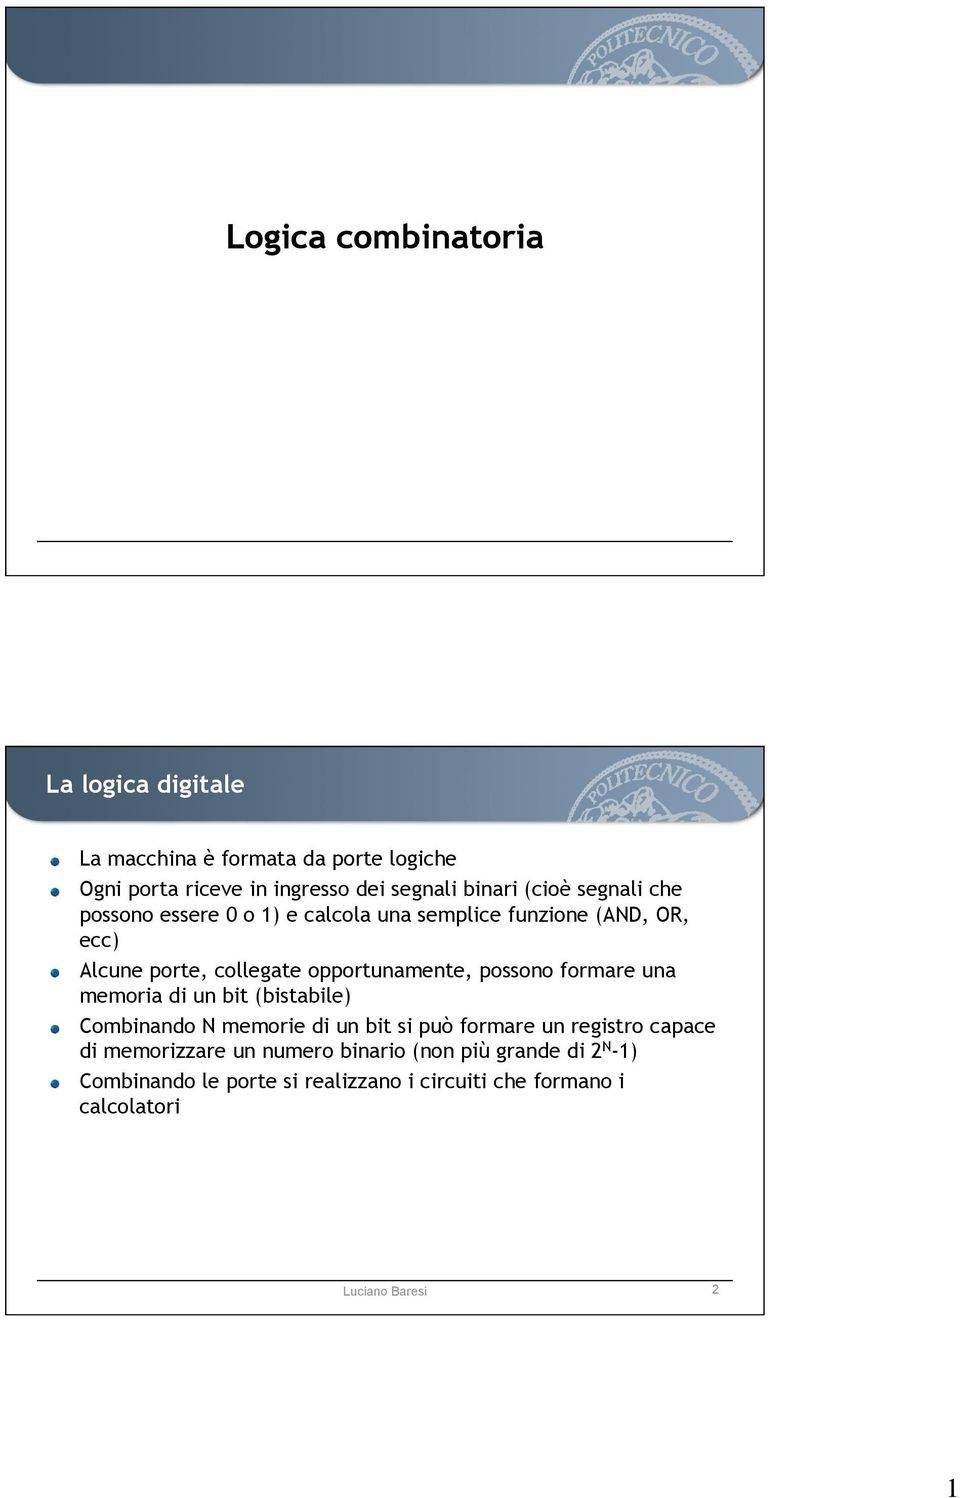 Logica combinatoria la logica digitale pdf - Calcola imposta di registro ...